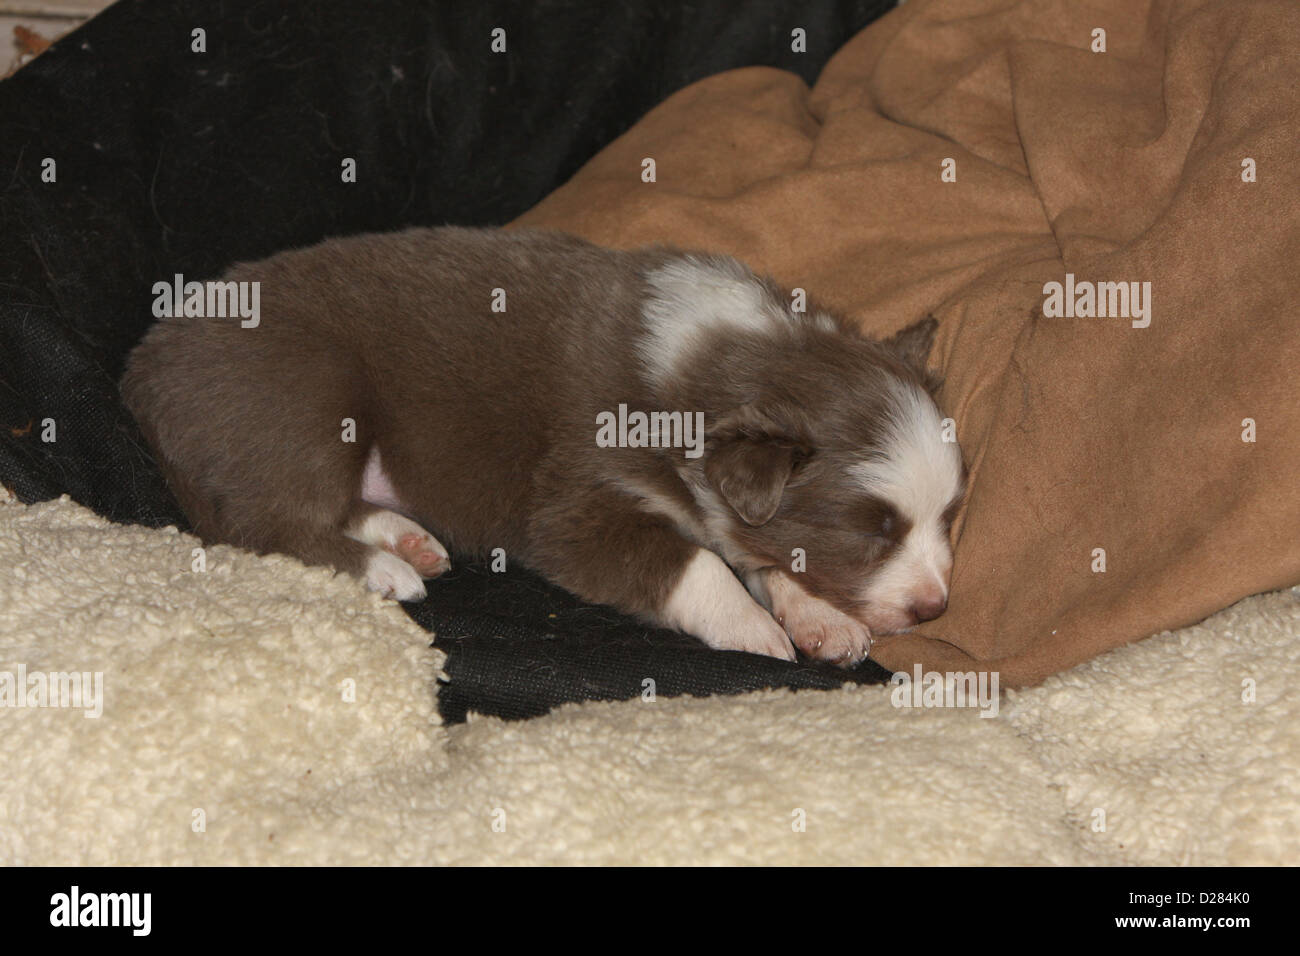 Dog Border Collie puppy sleeping on the covers - Stock Image